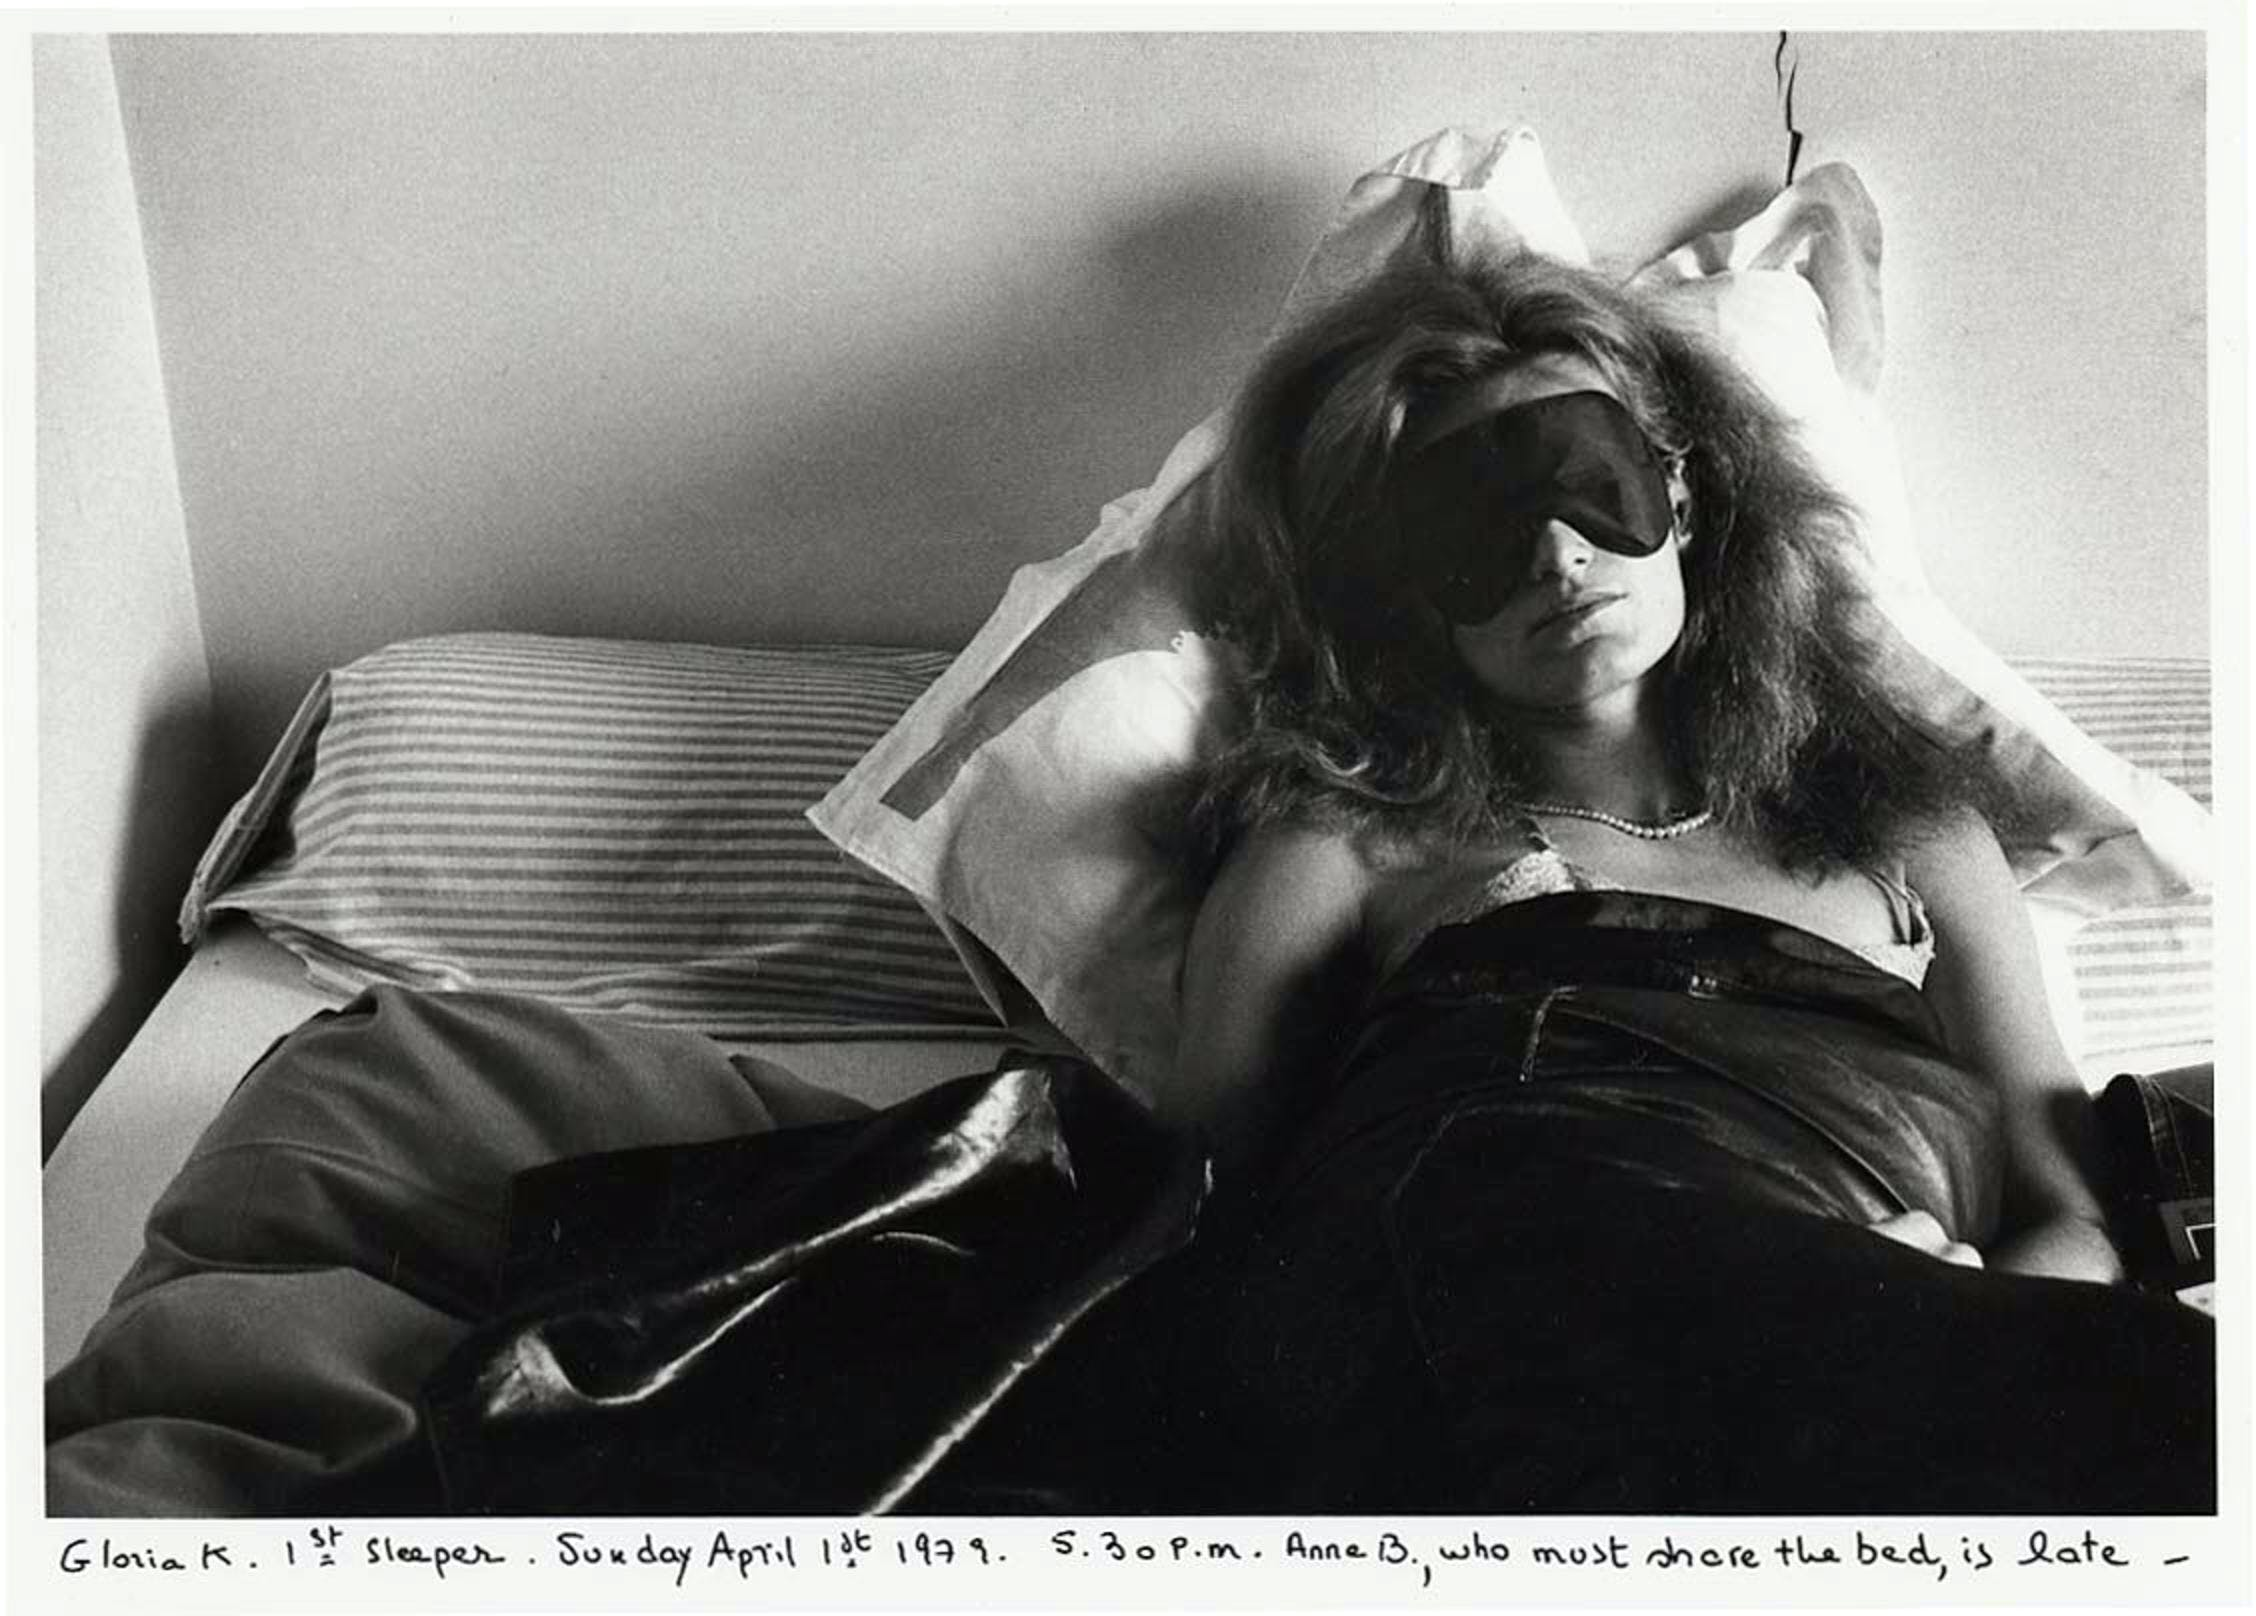 Gloria K., first sleeper. Anne B., second sleeper (1979), Sophie Calle